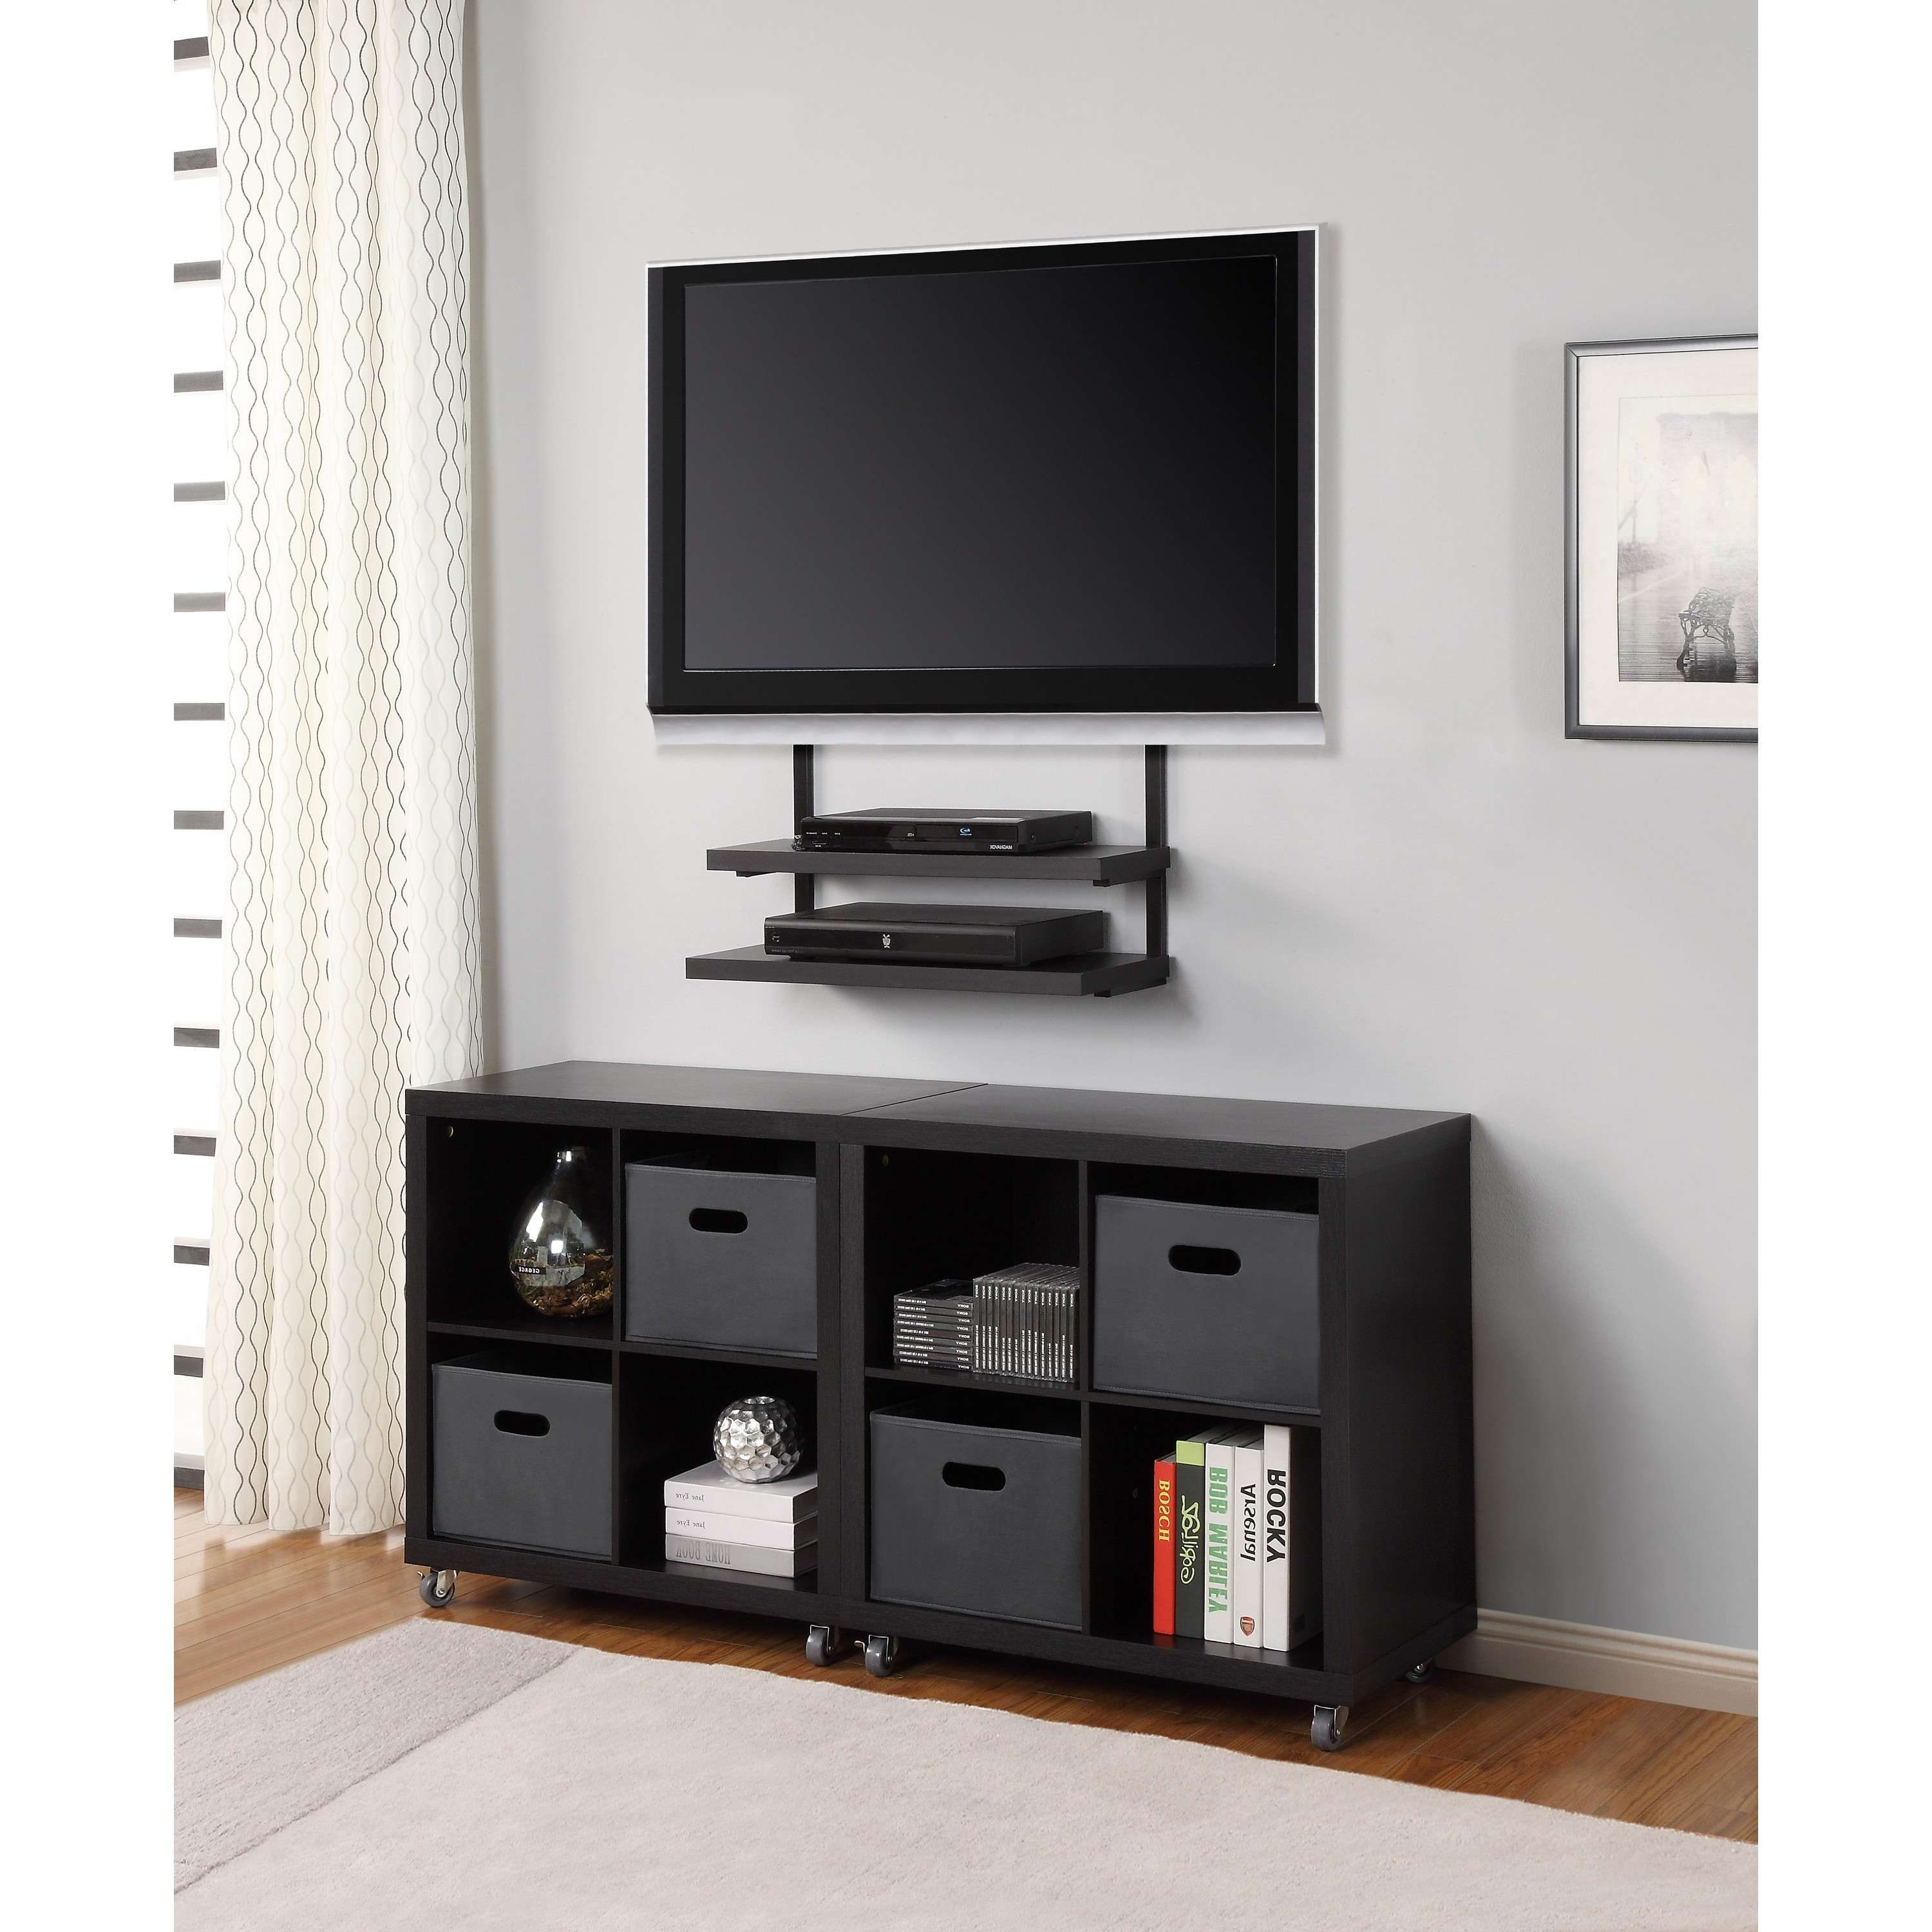 Unique Tv Stand Ideas Small Corner Awesome Images About Trends And Regarding Unique Tv Stands (View 14 of 15)